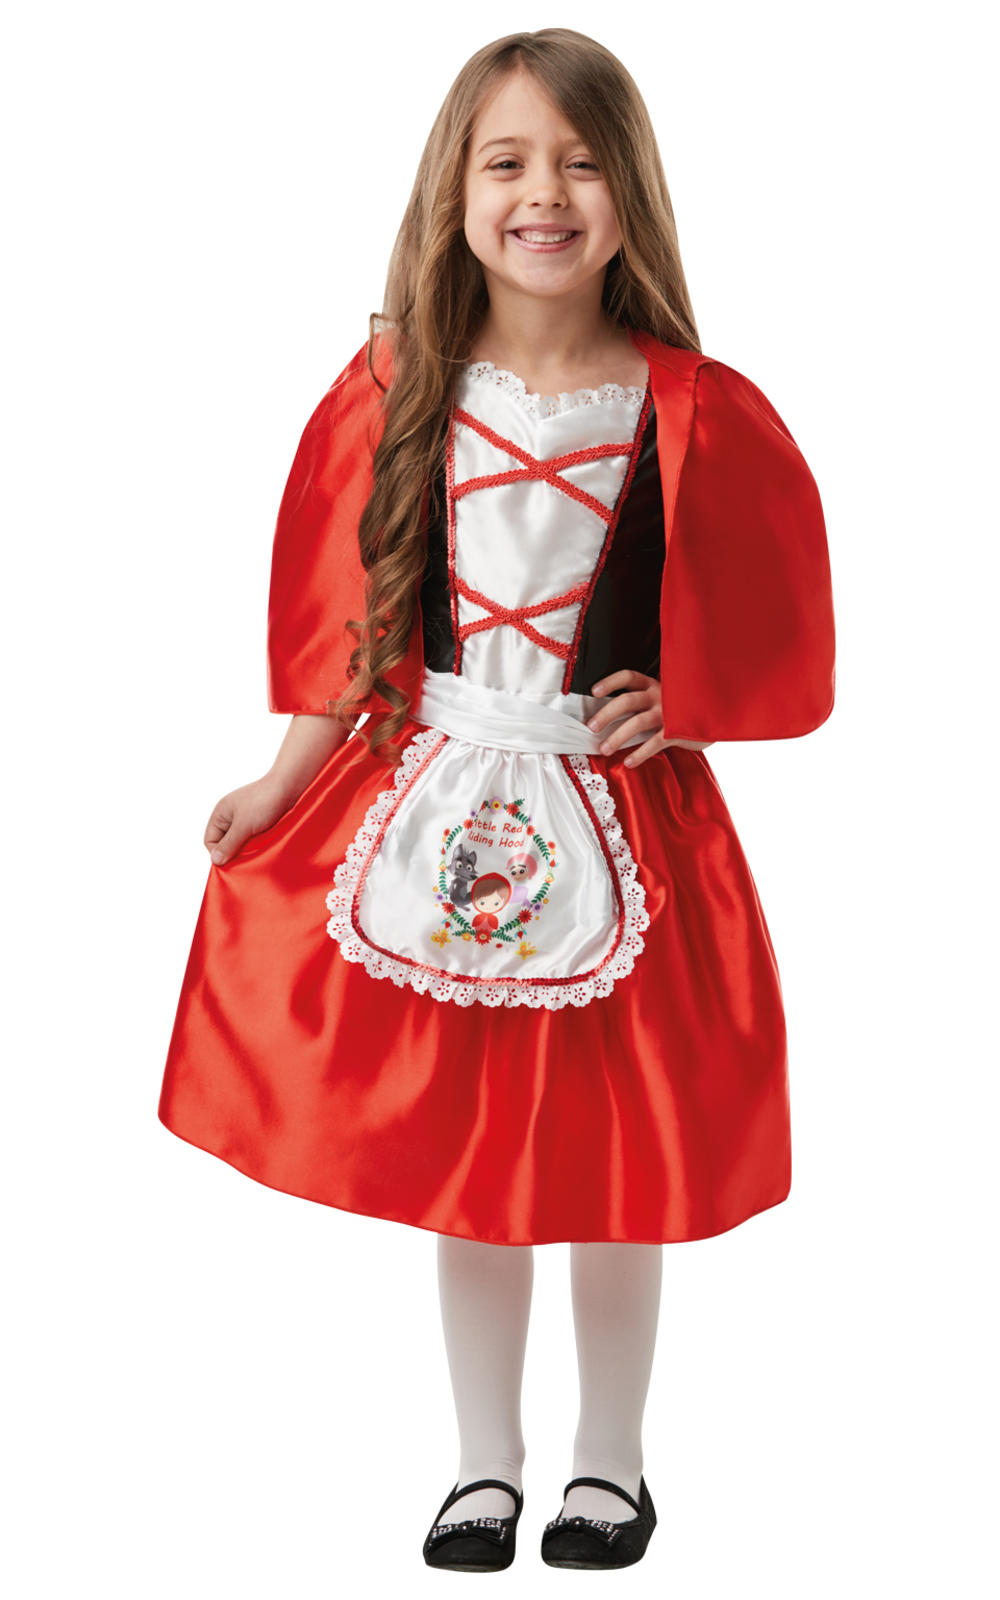 Red Riding Hood Girls Fancy Dress Fairy Tale World Book Day Kids Childs Costume